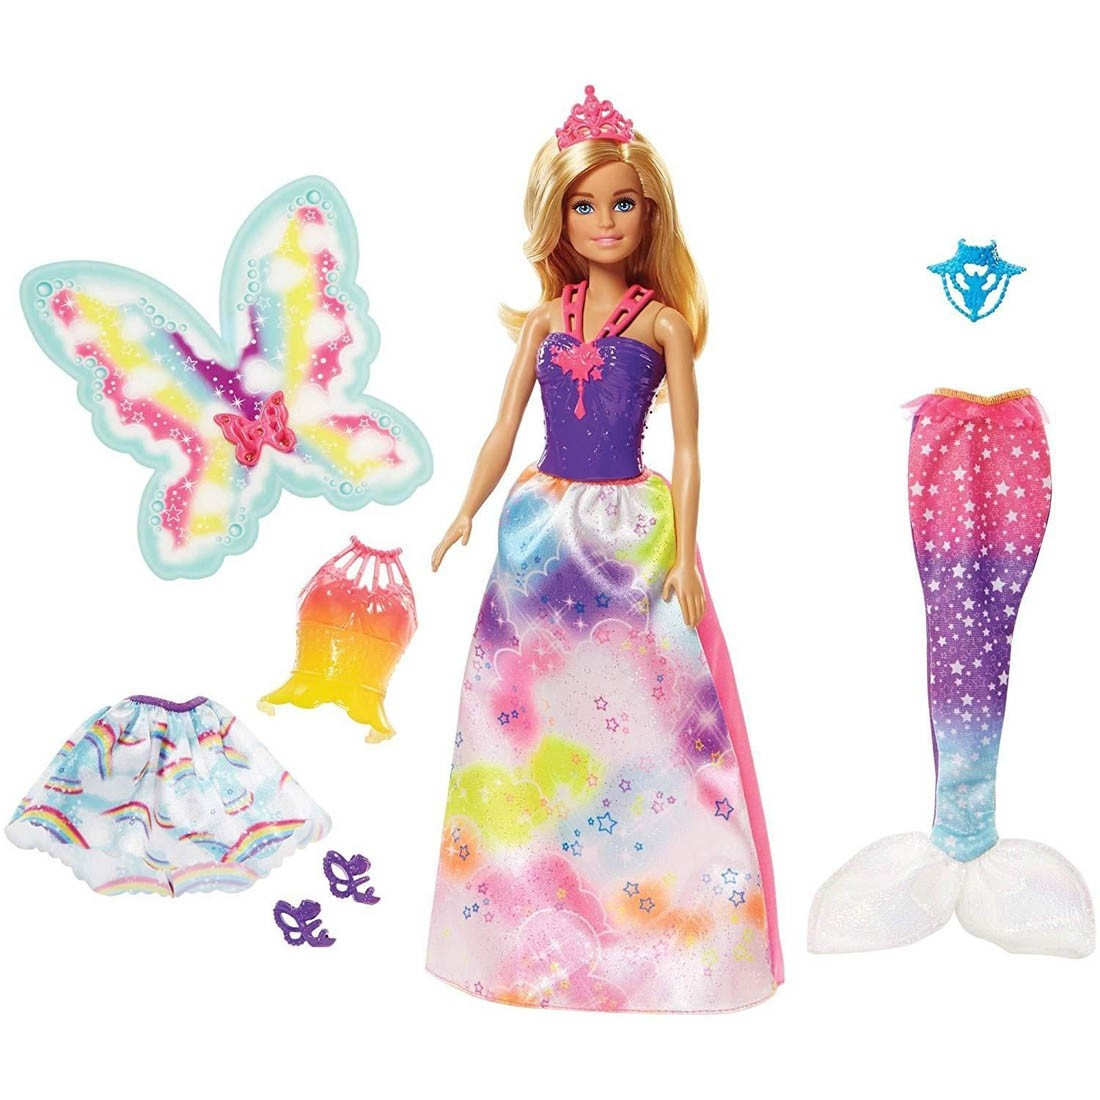 barbie-dreamtopia-doll-with-3-fairytale-costumes-barbie-amman-887961533620